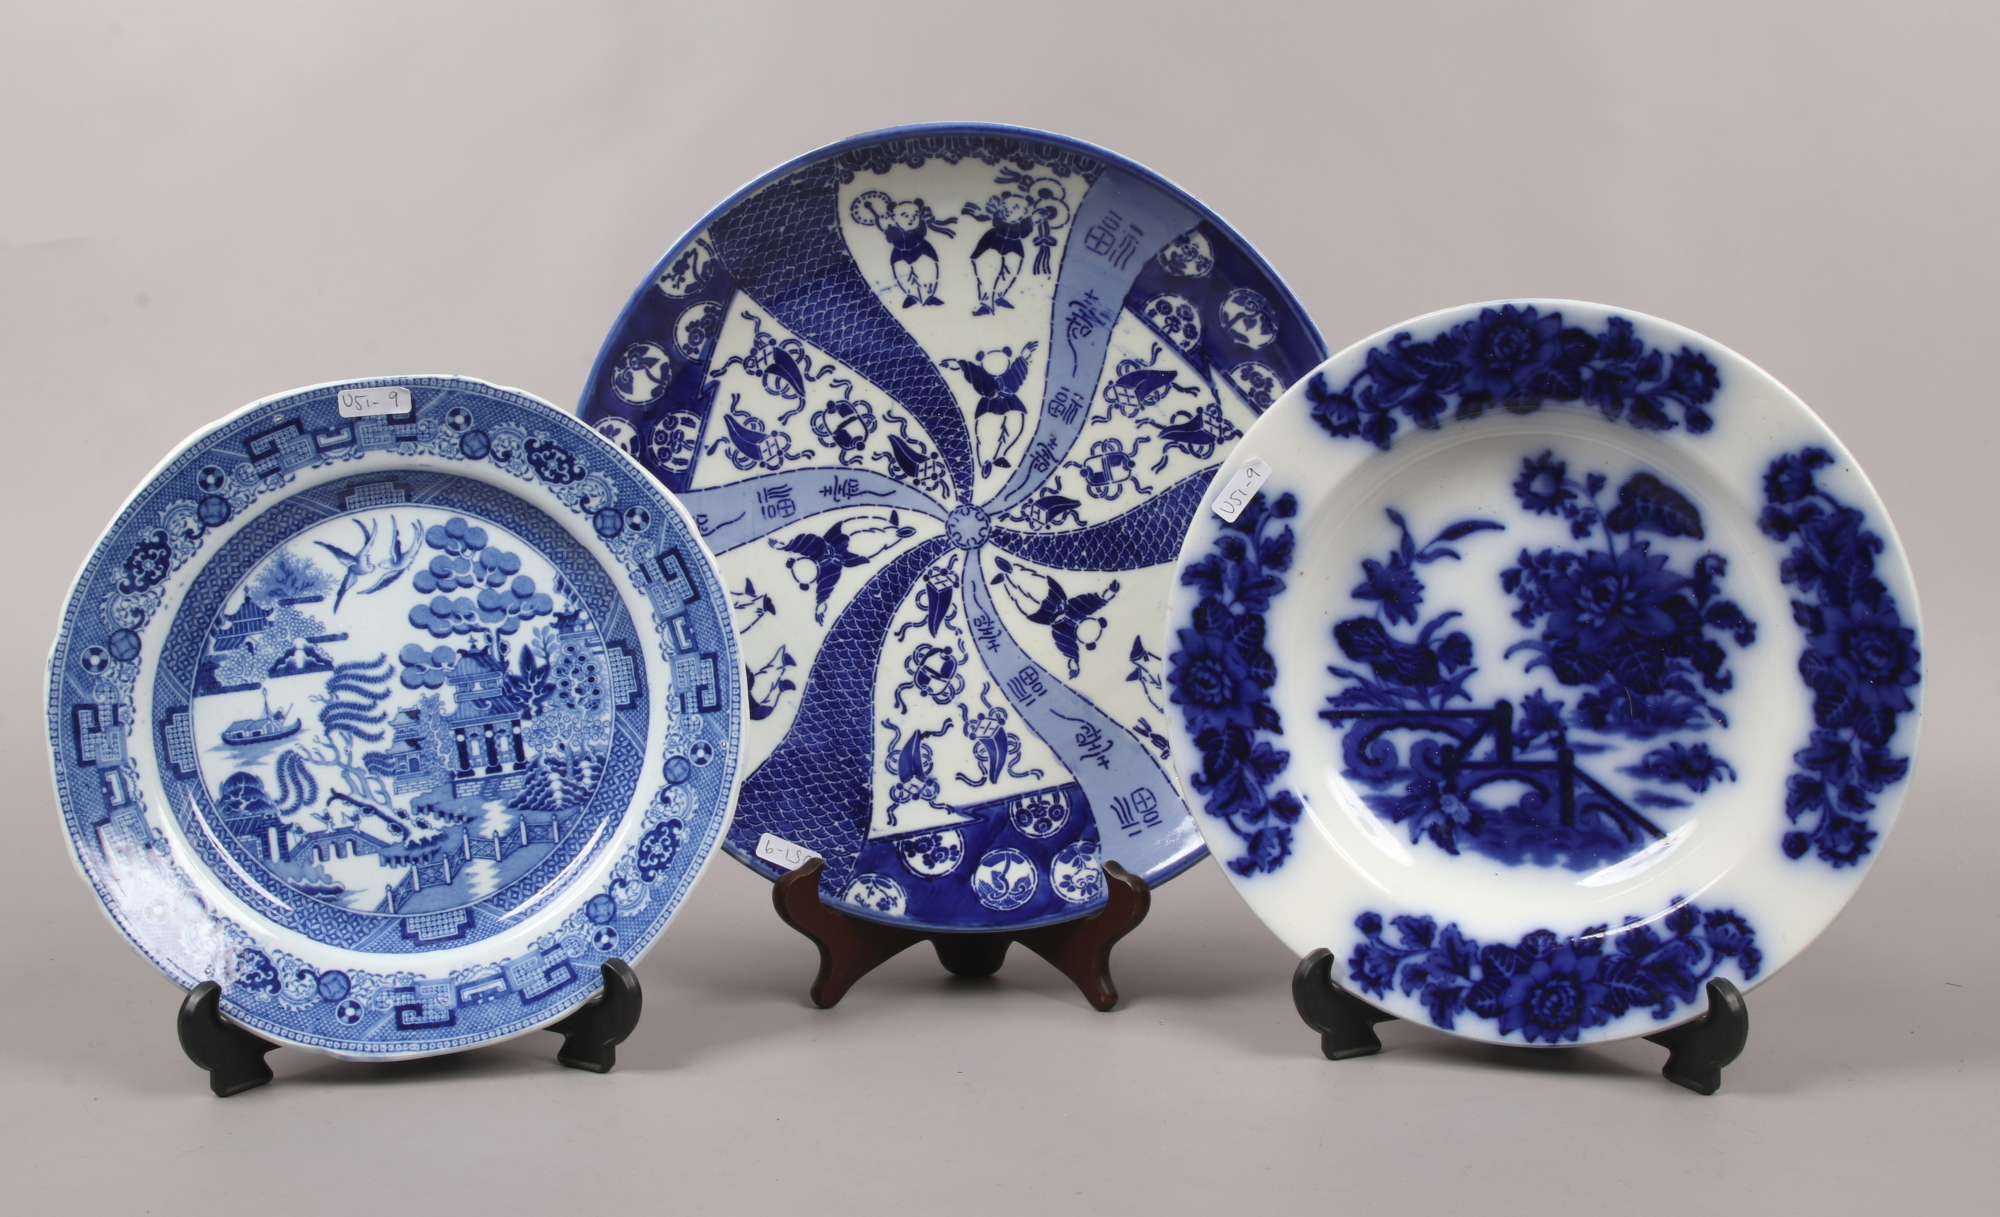 Lot 53 - Three blue and white plates including a Japanese transfer printed example.